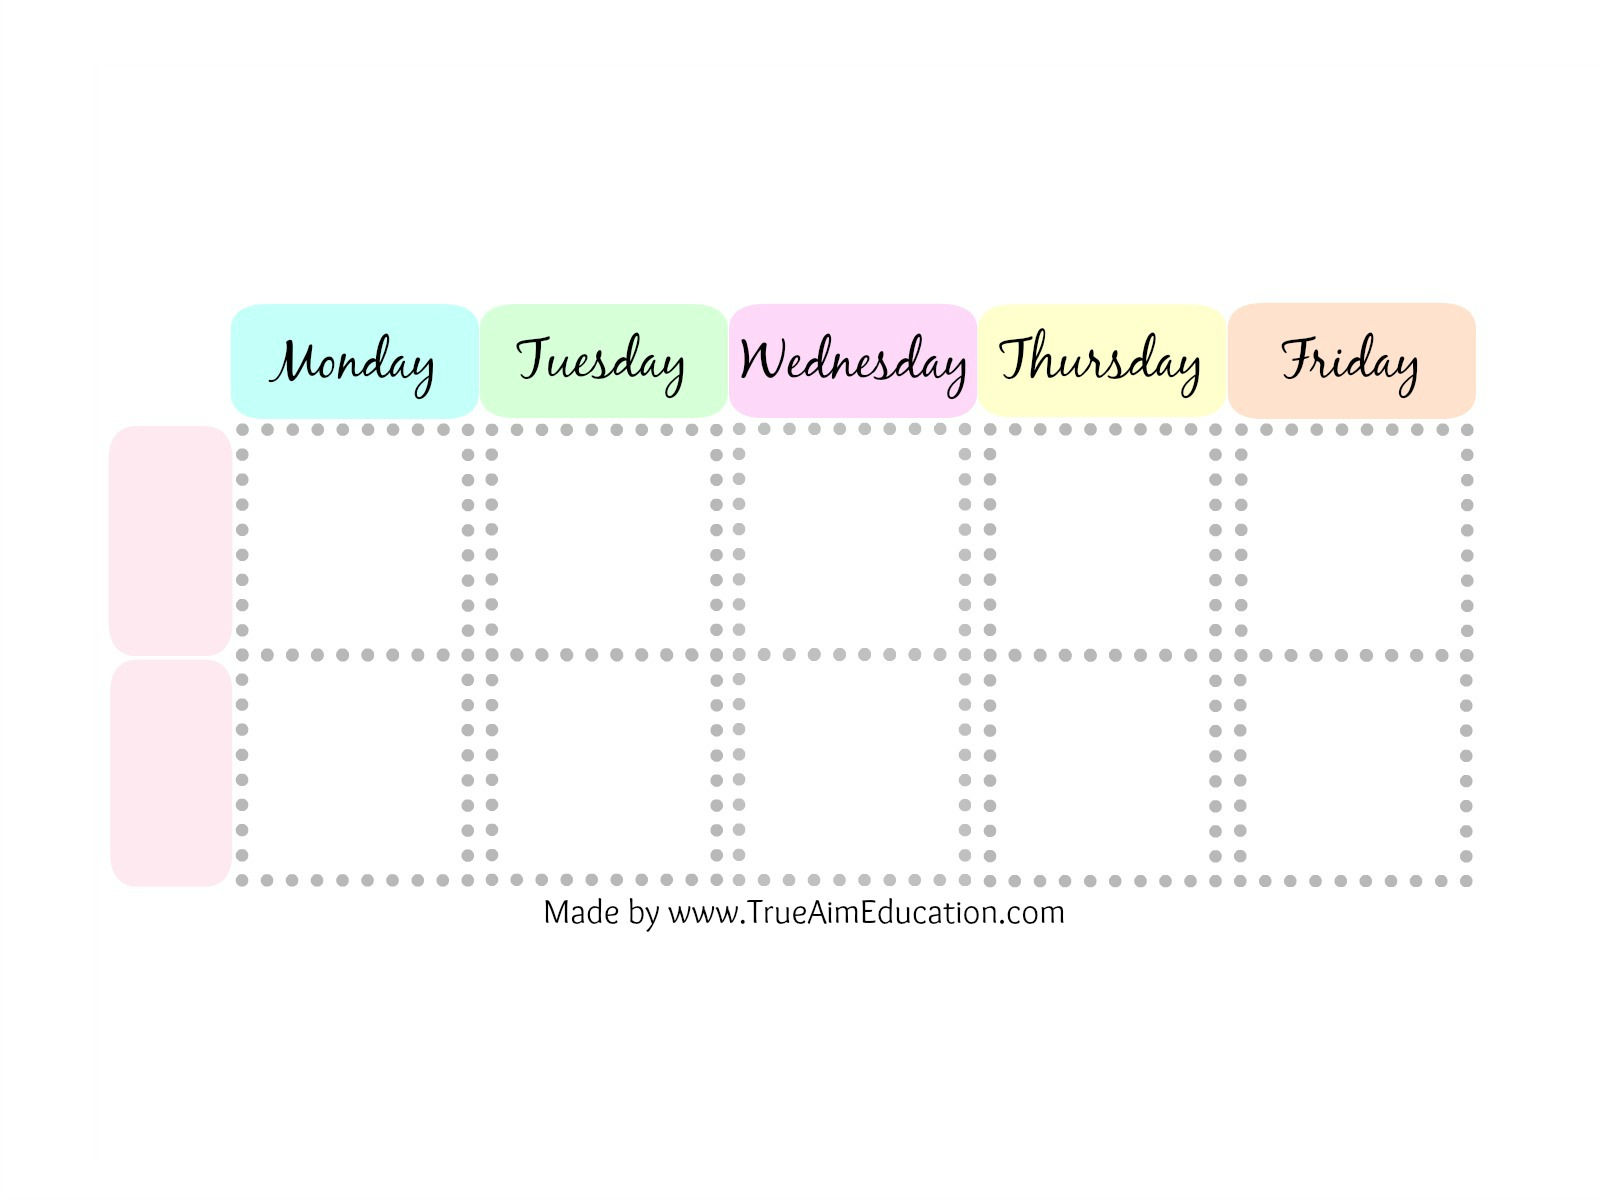 graphic about Weekly Agenda Printable titled No cost Weekly Planner Printable Real Concentrate